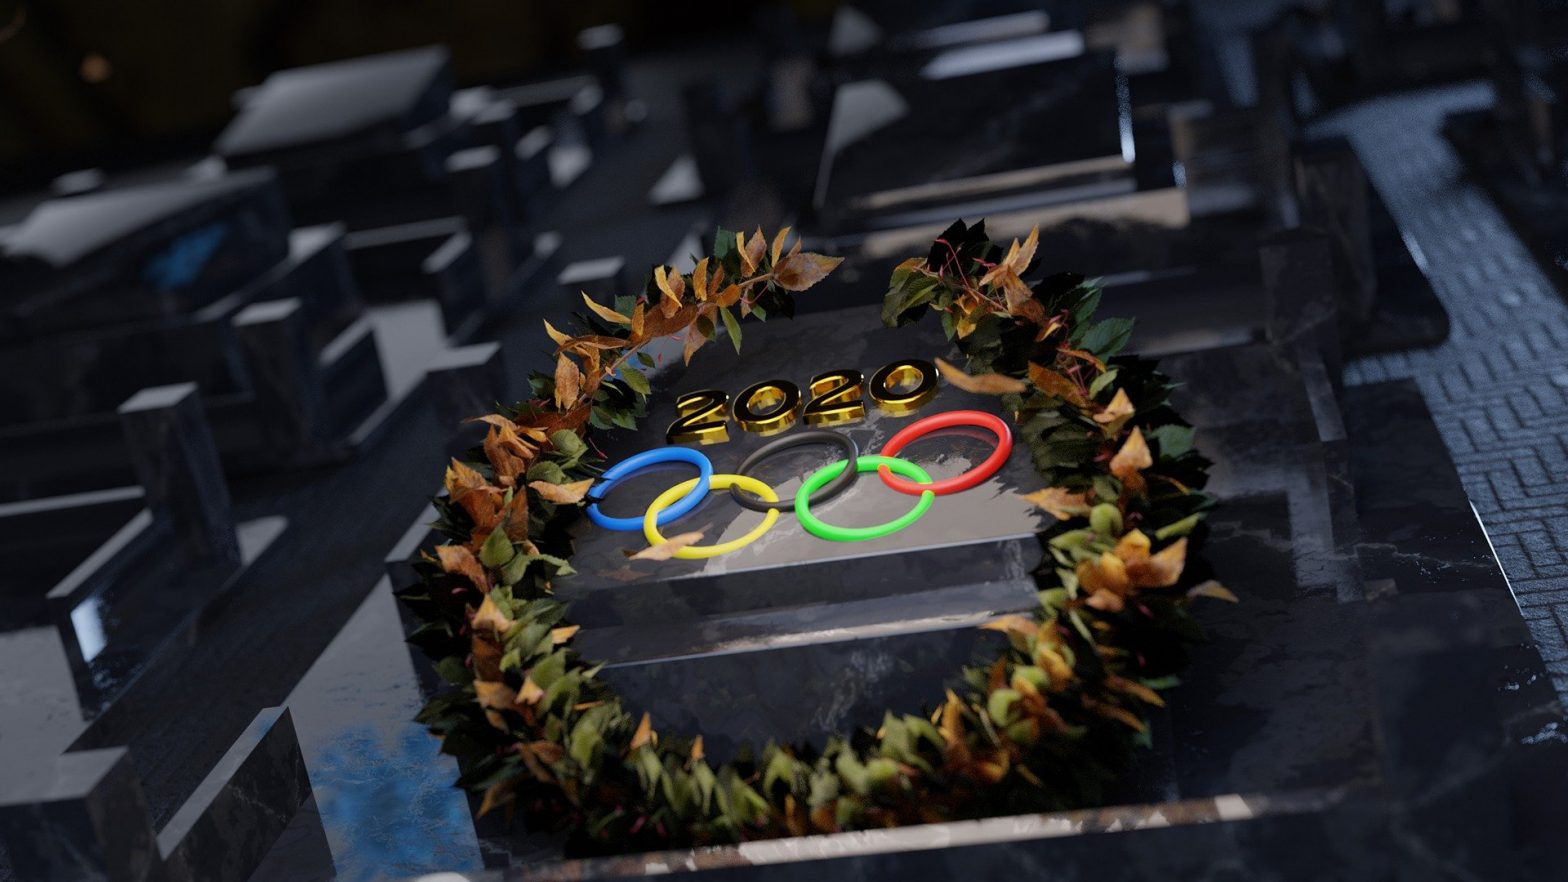 GV of Olympic Rings, 'Tokyo' and a laurel wreath of flames